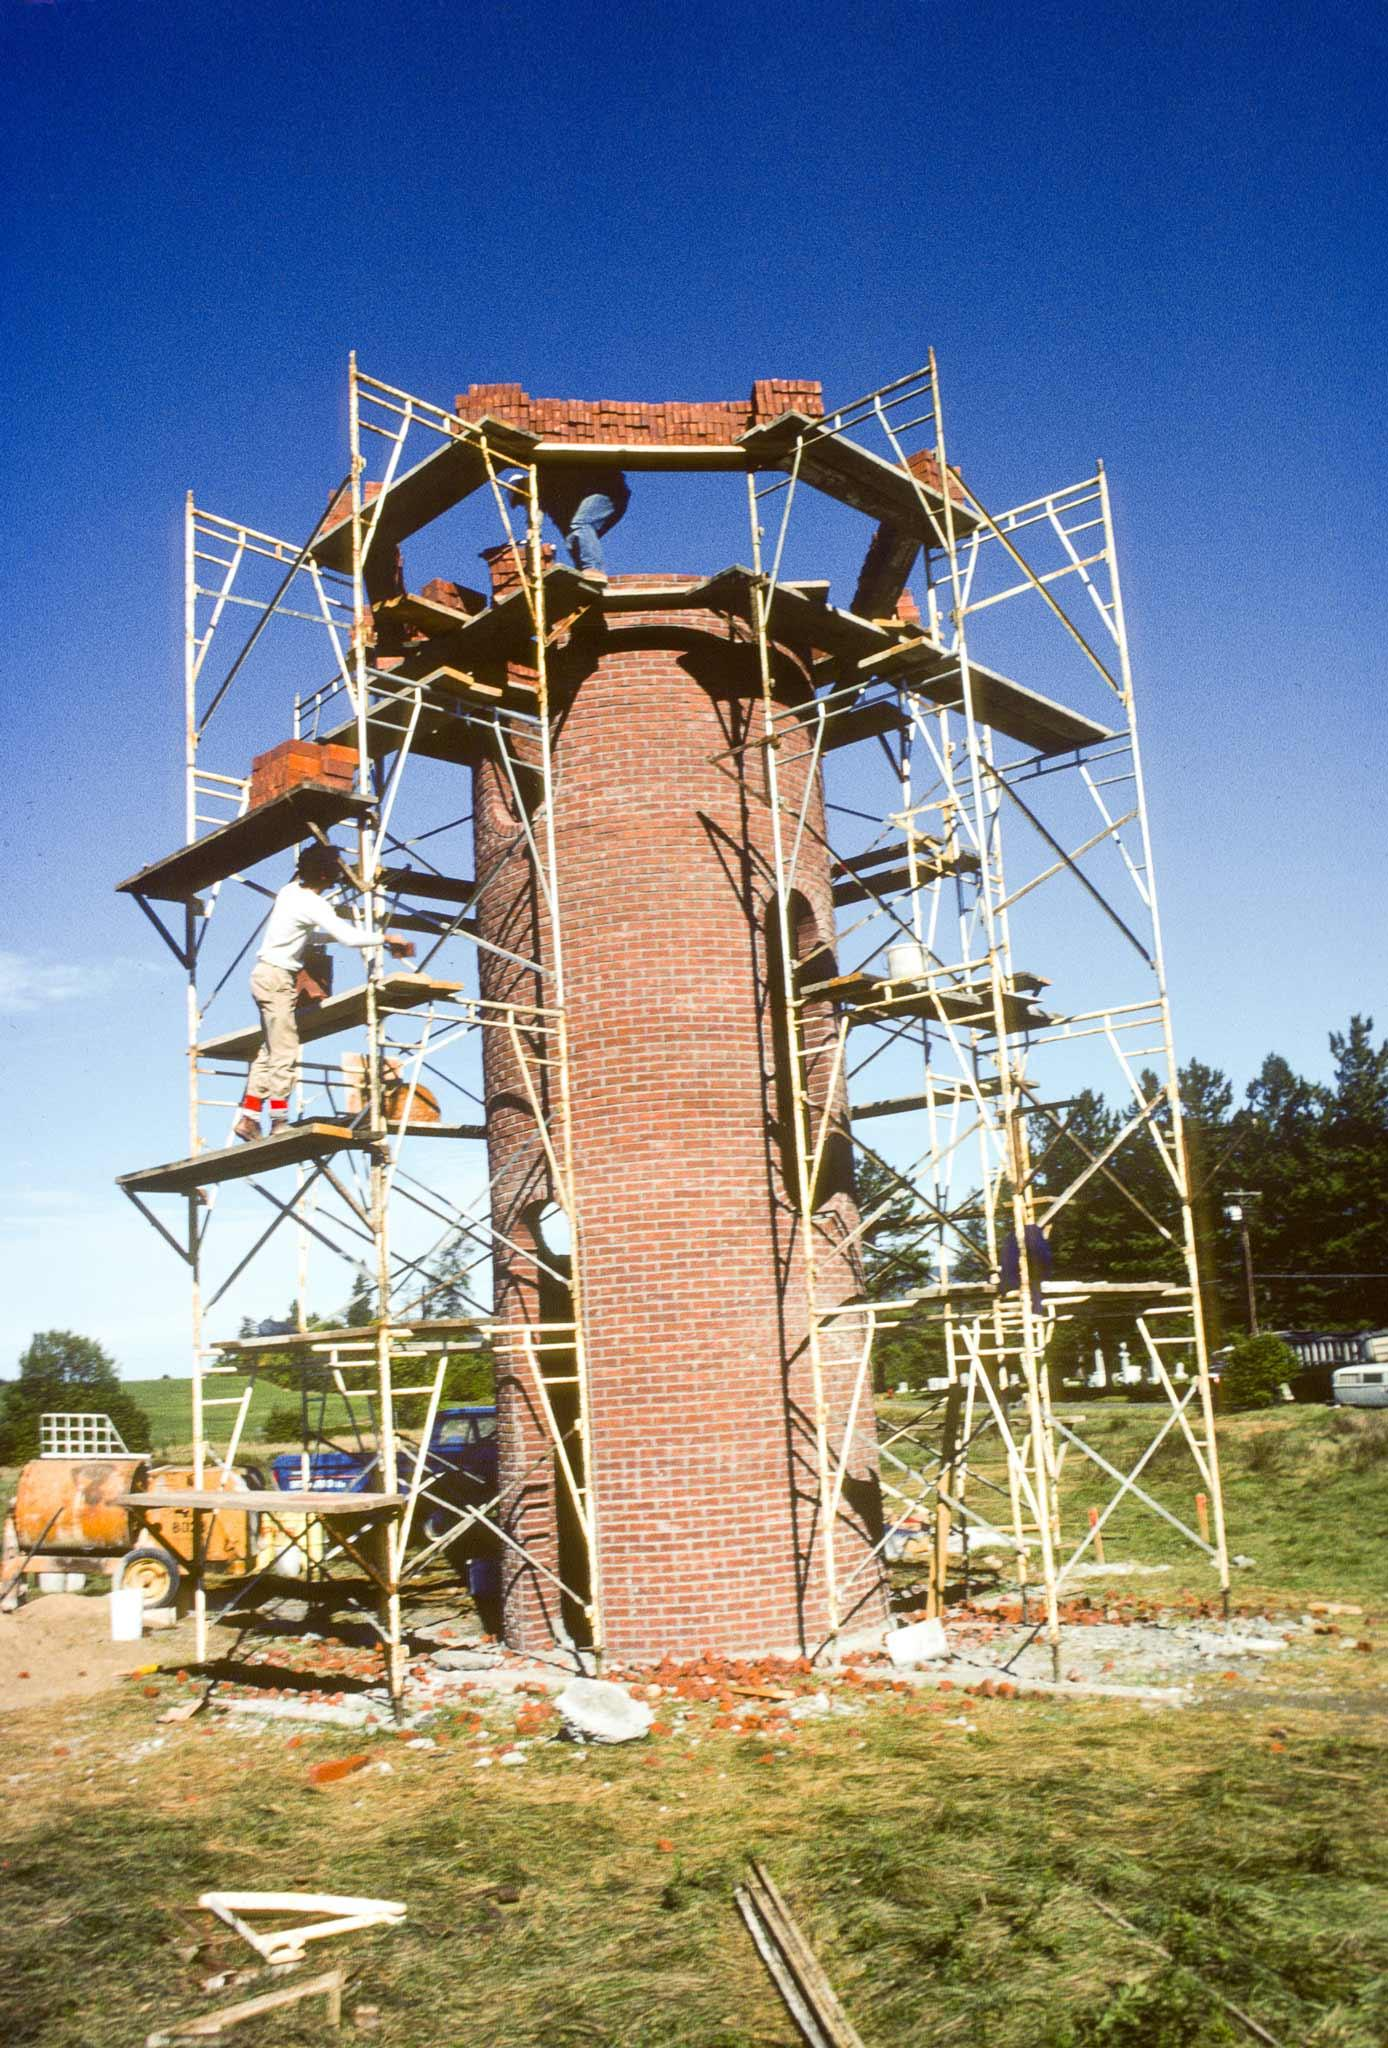 construction image of scaffolding surrounding a tall circular brick structure